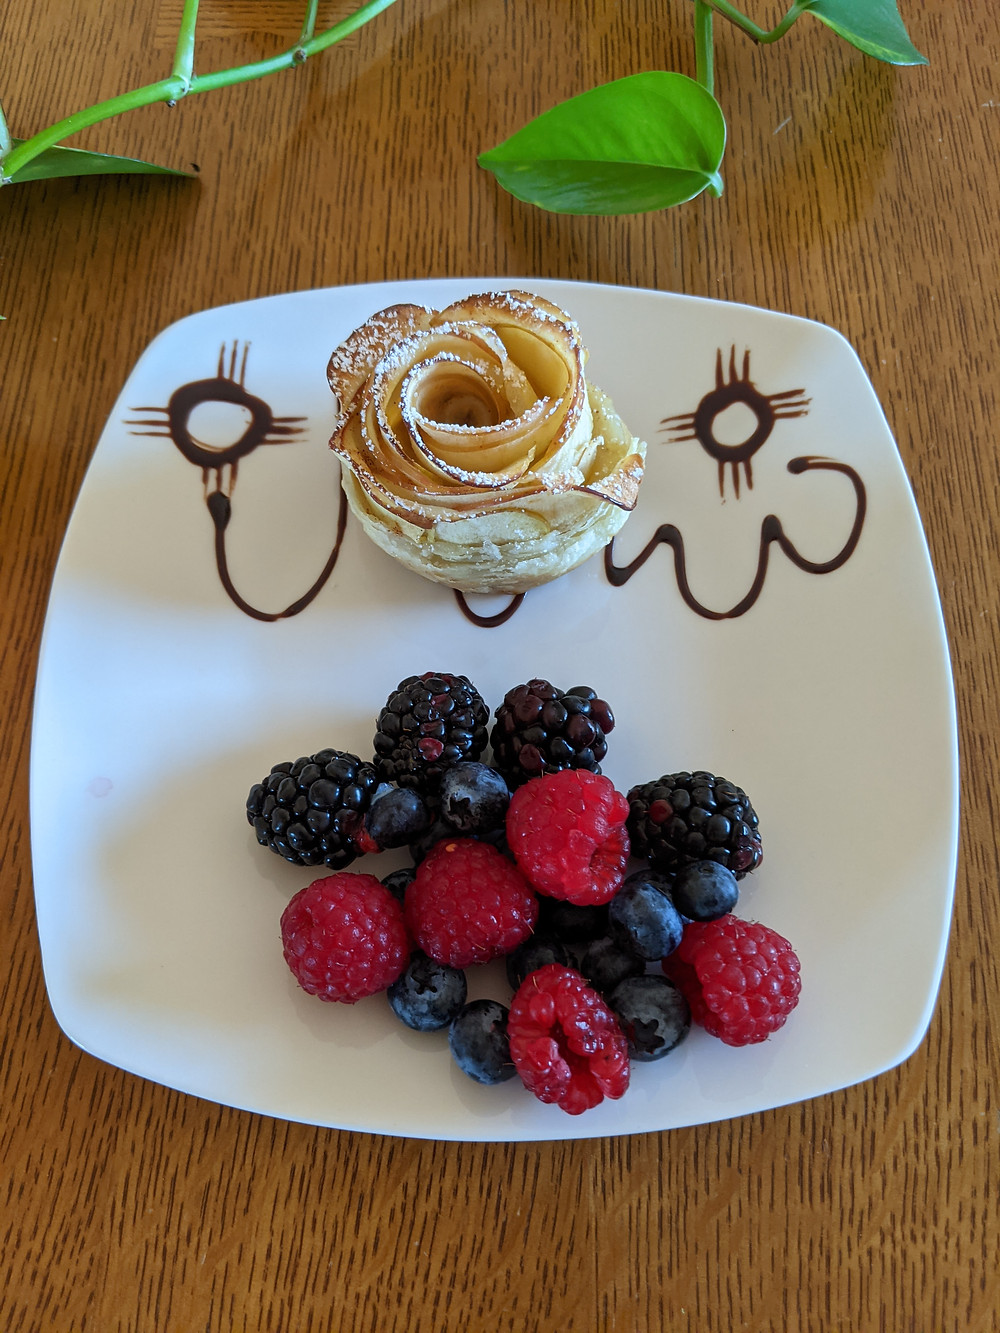 A pastry, looking like a light brown rose, sits above a small pile of blackberries, raspberries and blueberries. The plate is decorated with chocolate swirls.